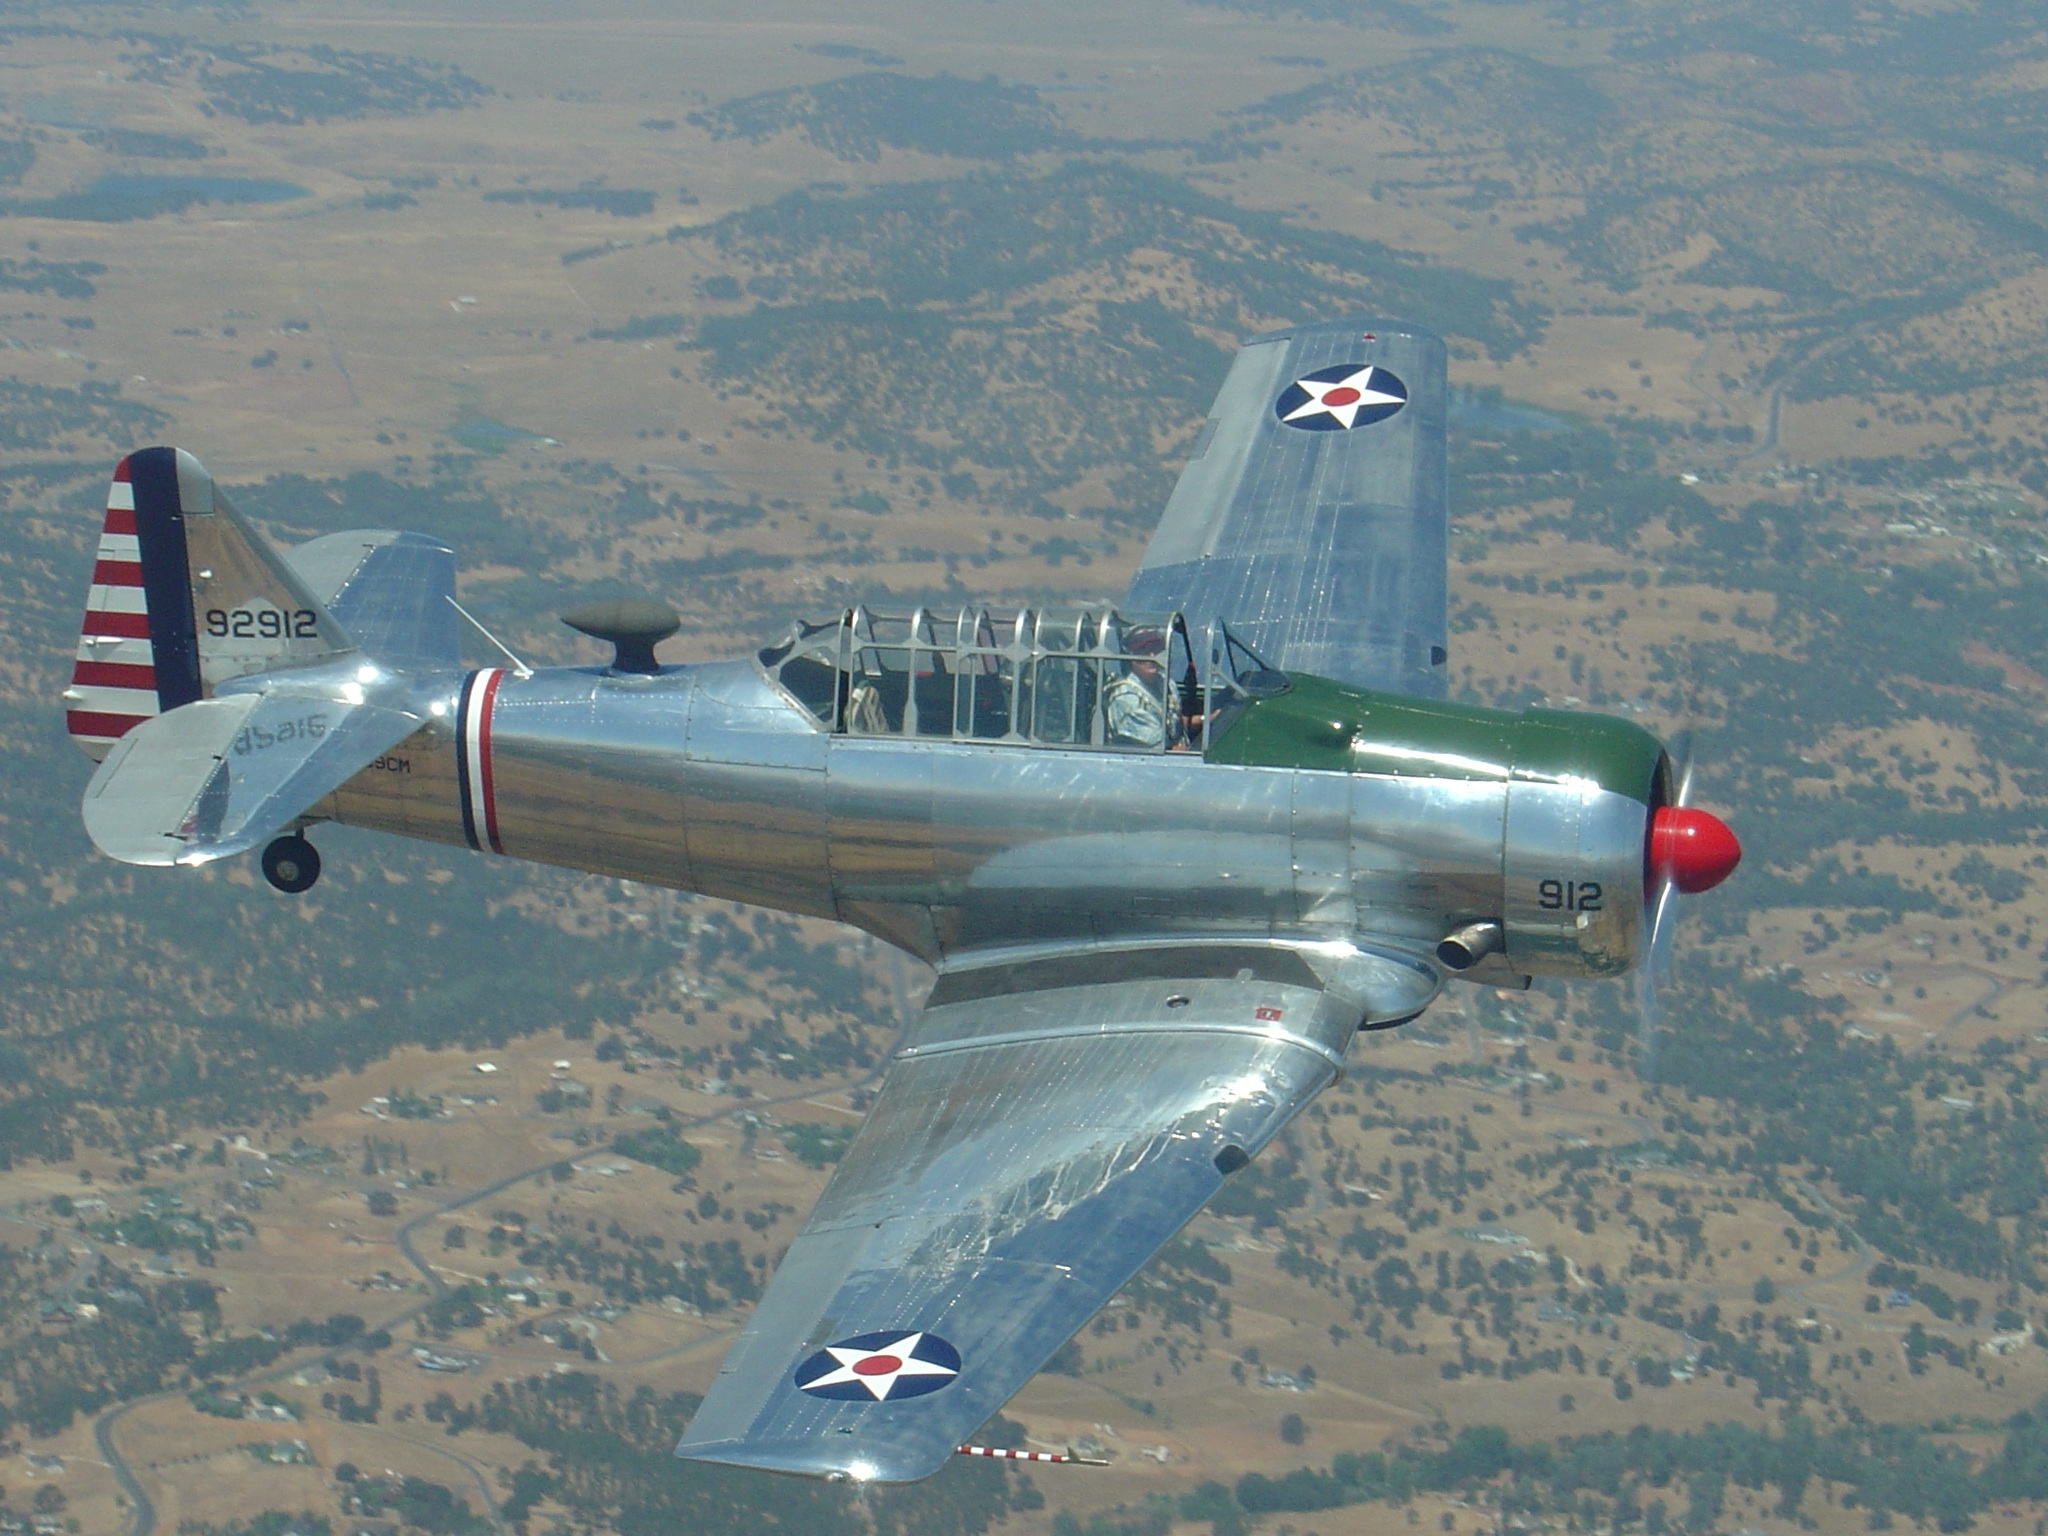 North American Aviation AT-6 Texan